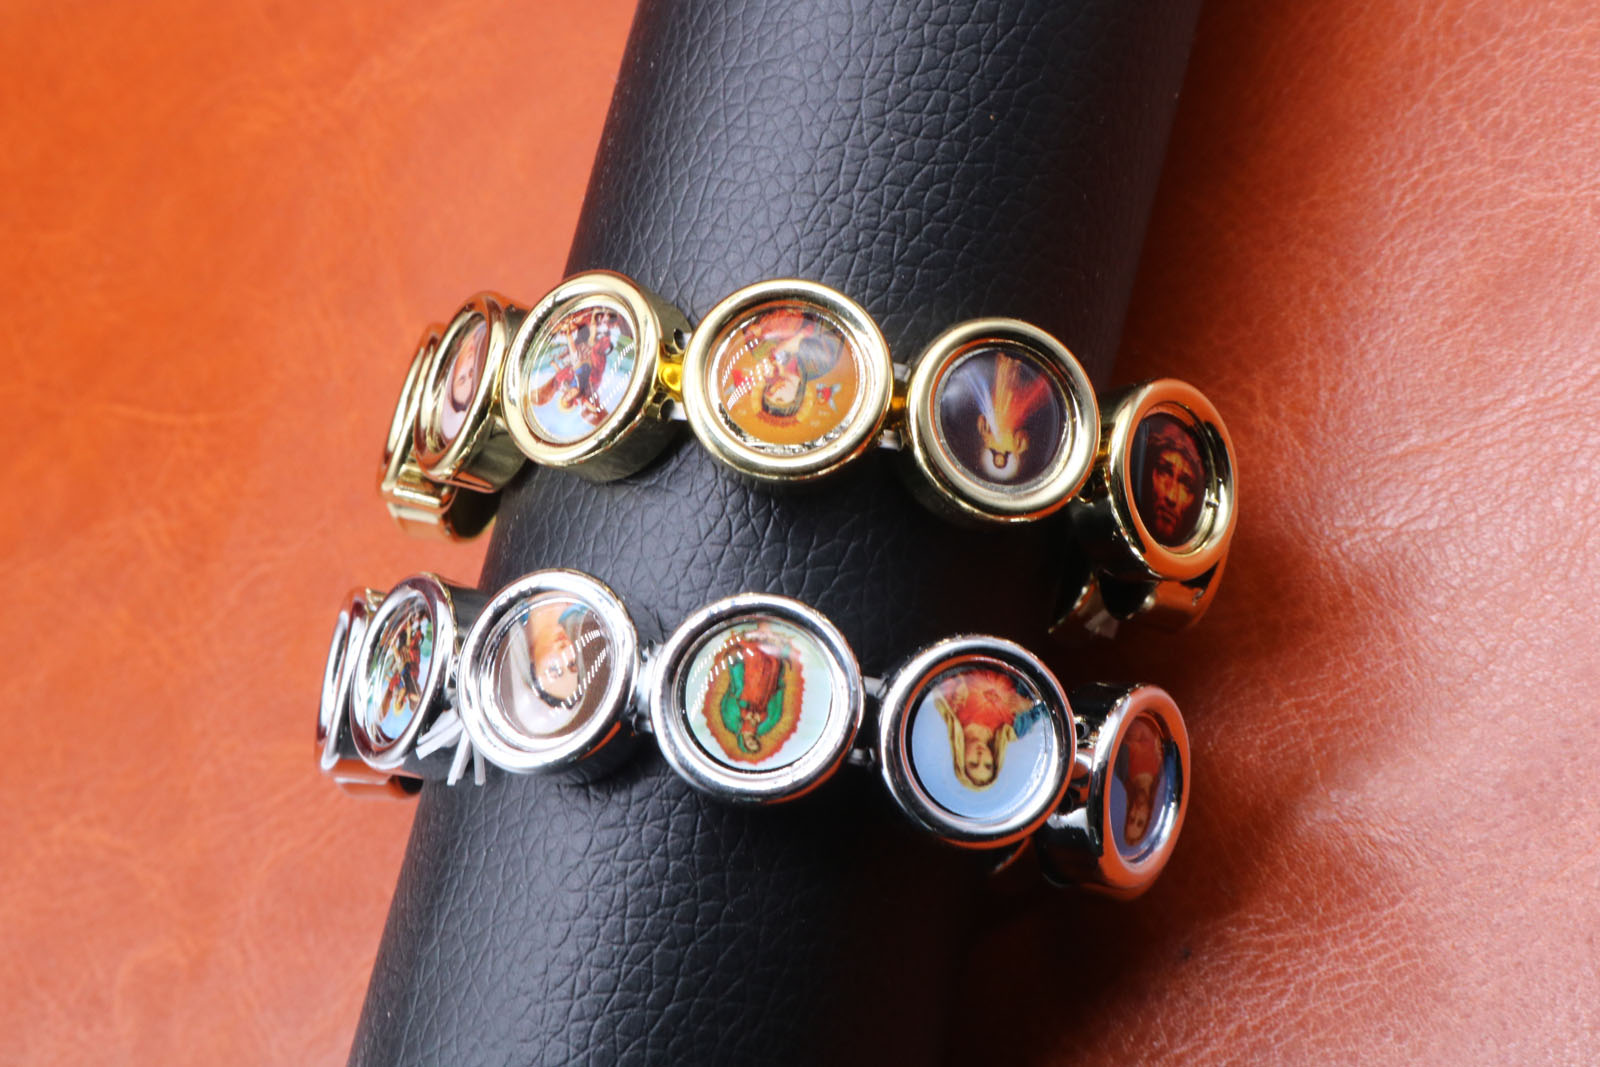 New Pop Jesus Cross Virgin Mary Holy Round Gold and Silver Bracelet INRI Cross Jesus Cross Bracelet Style.48PCS